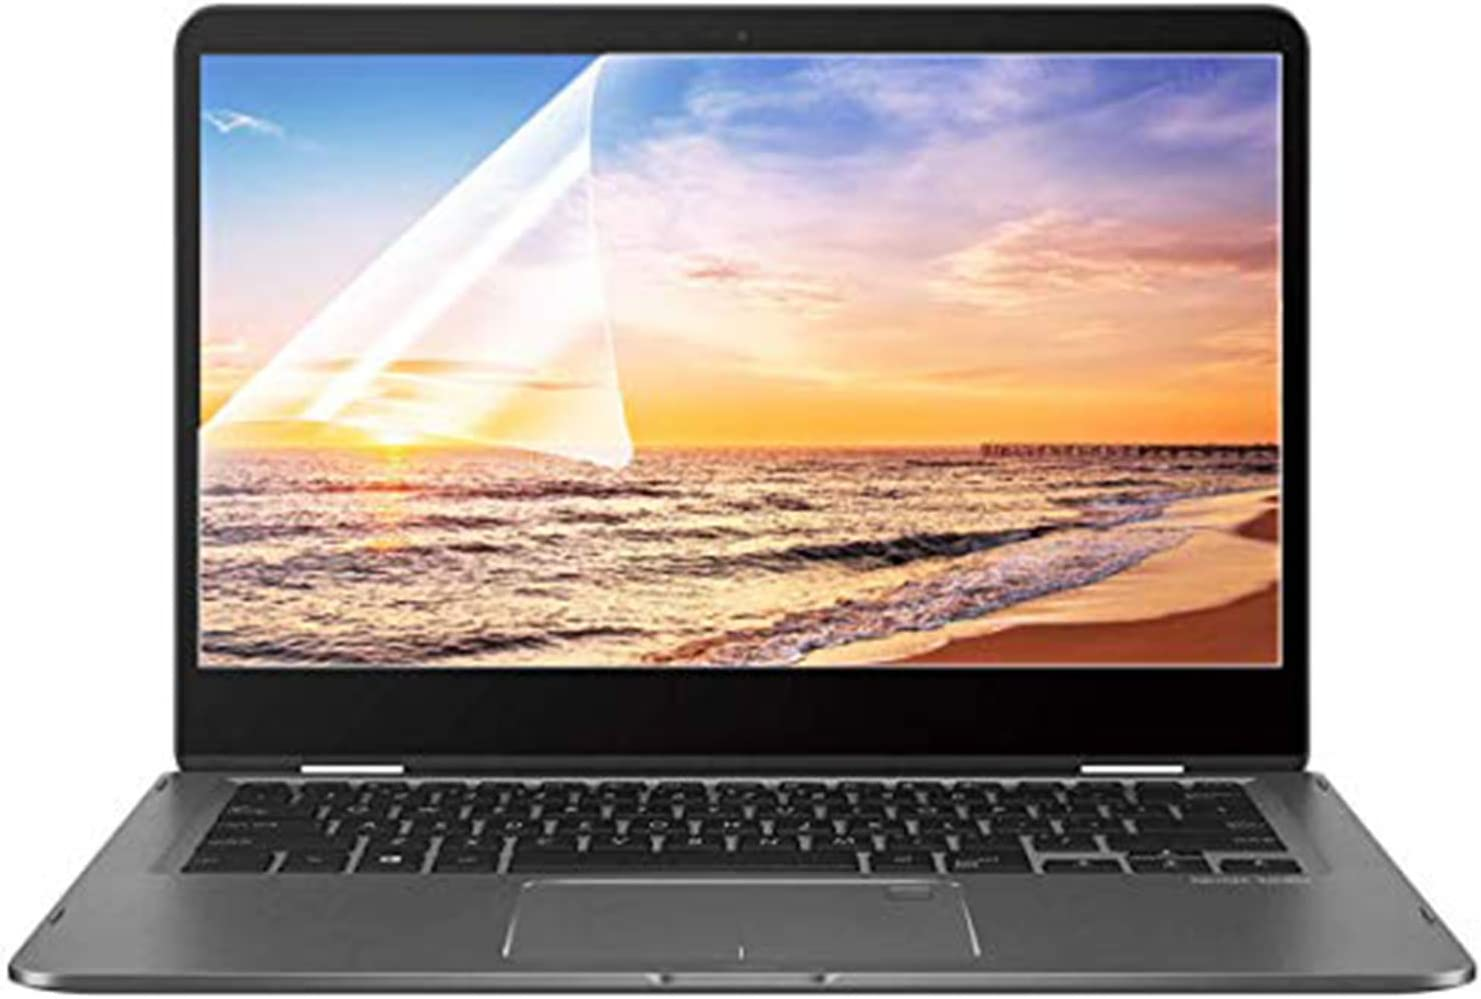 """2 Pack 15.6 Inch Laptop AntiGlareScreenProtector, 15.6"""" Matte Screen Protector for All 15.6"""" Notebook Computer with Display 16:9"""